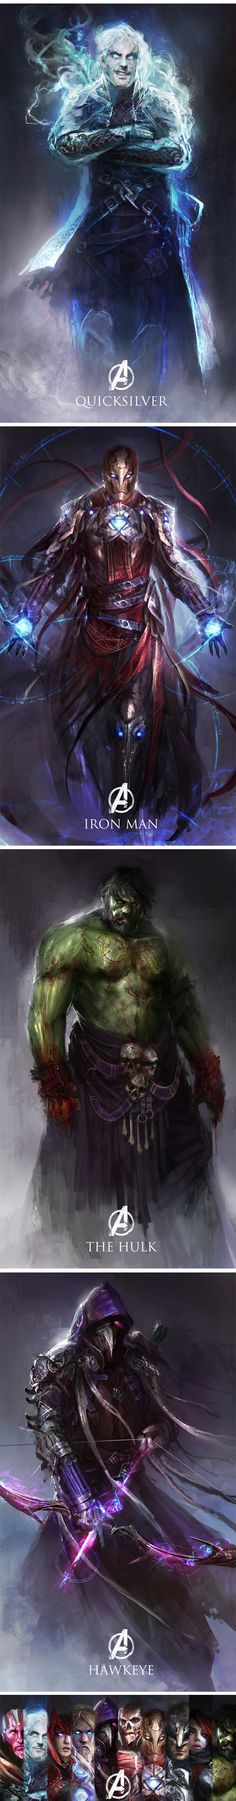 Age Of Ultron Characters Re-imagined As Medieval Fantasy. This is really cool